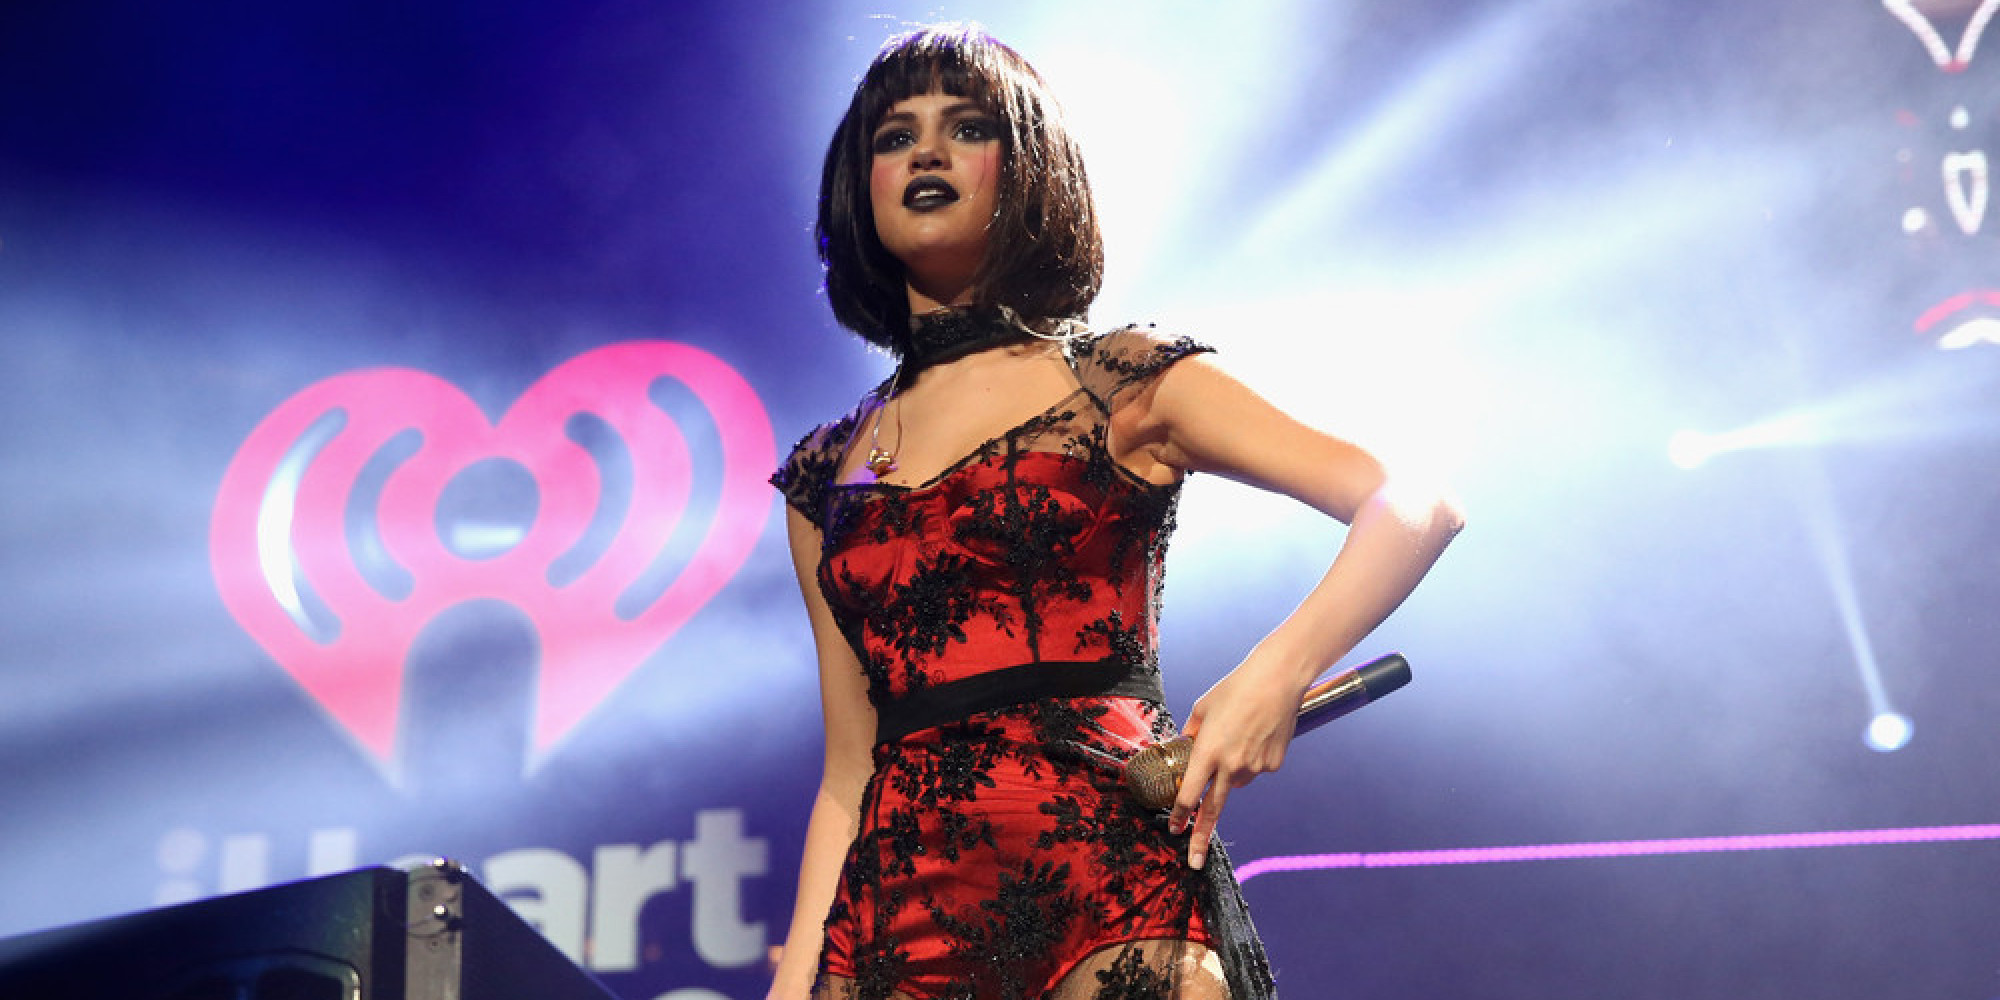 Selena Gomez Curses, Walks Out During A Concert!